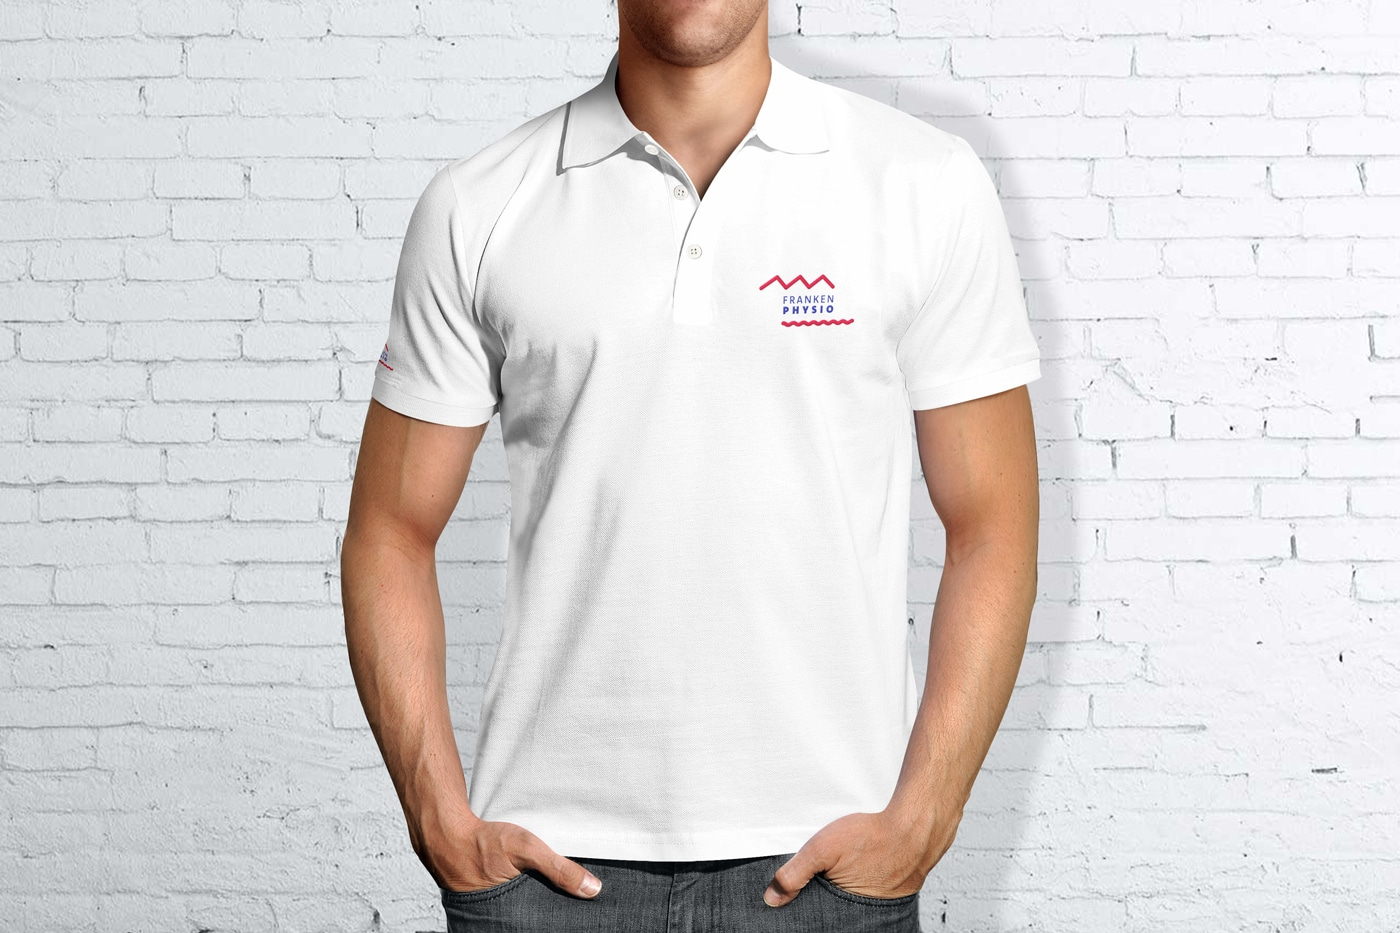 Poloshirt Design Physiotherapie Praxis